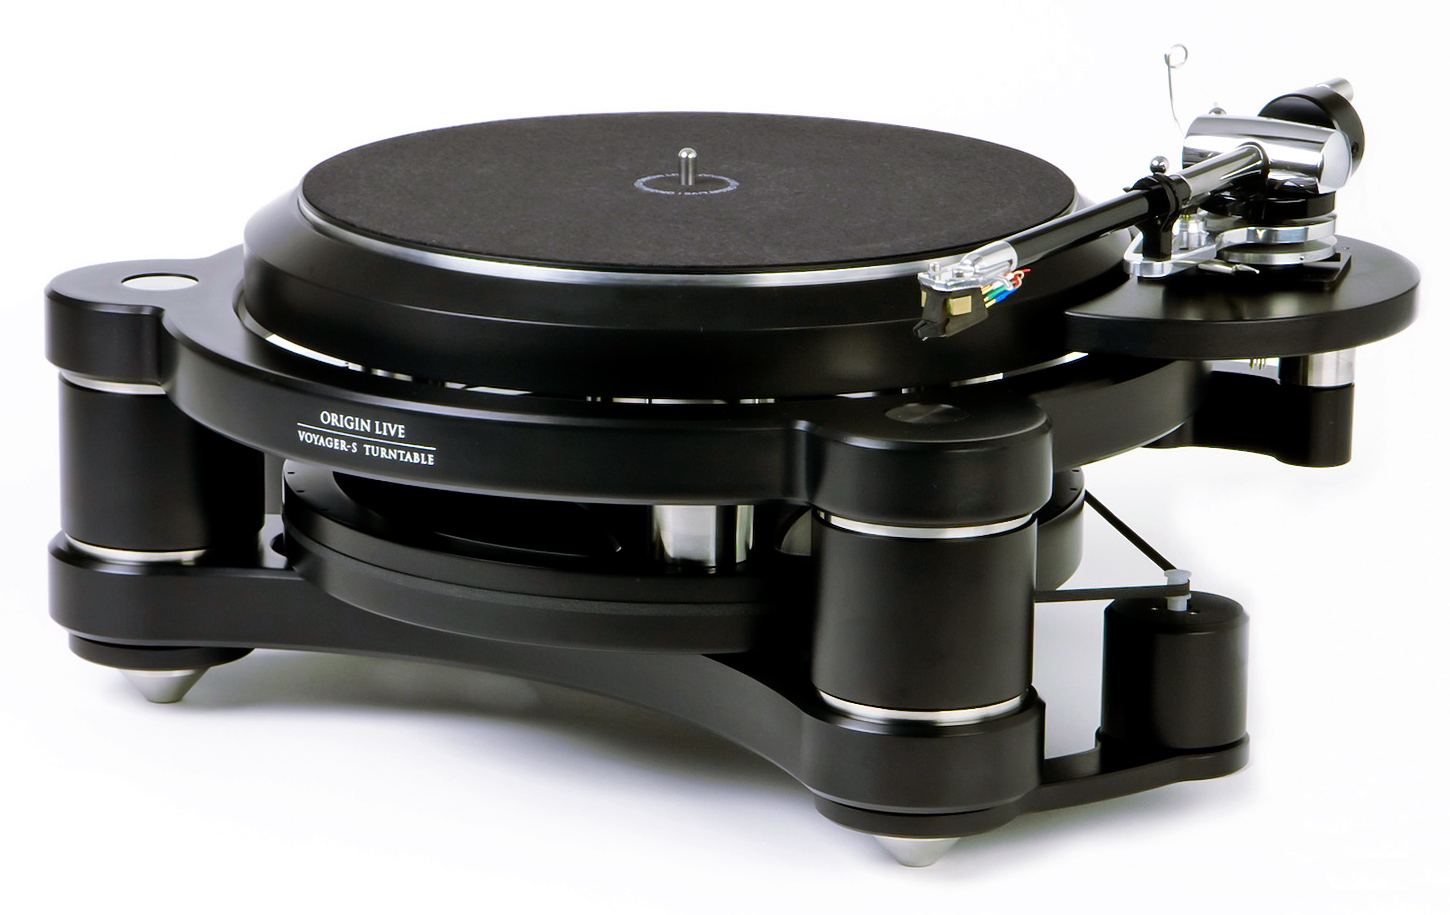 origin live voyager turntable